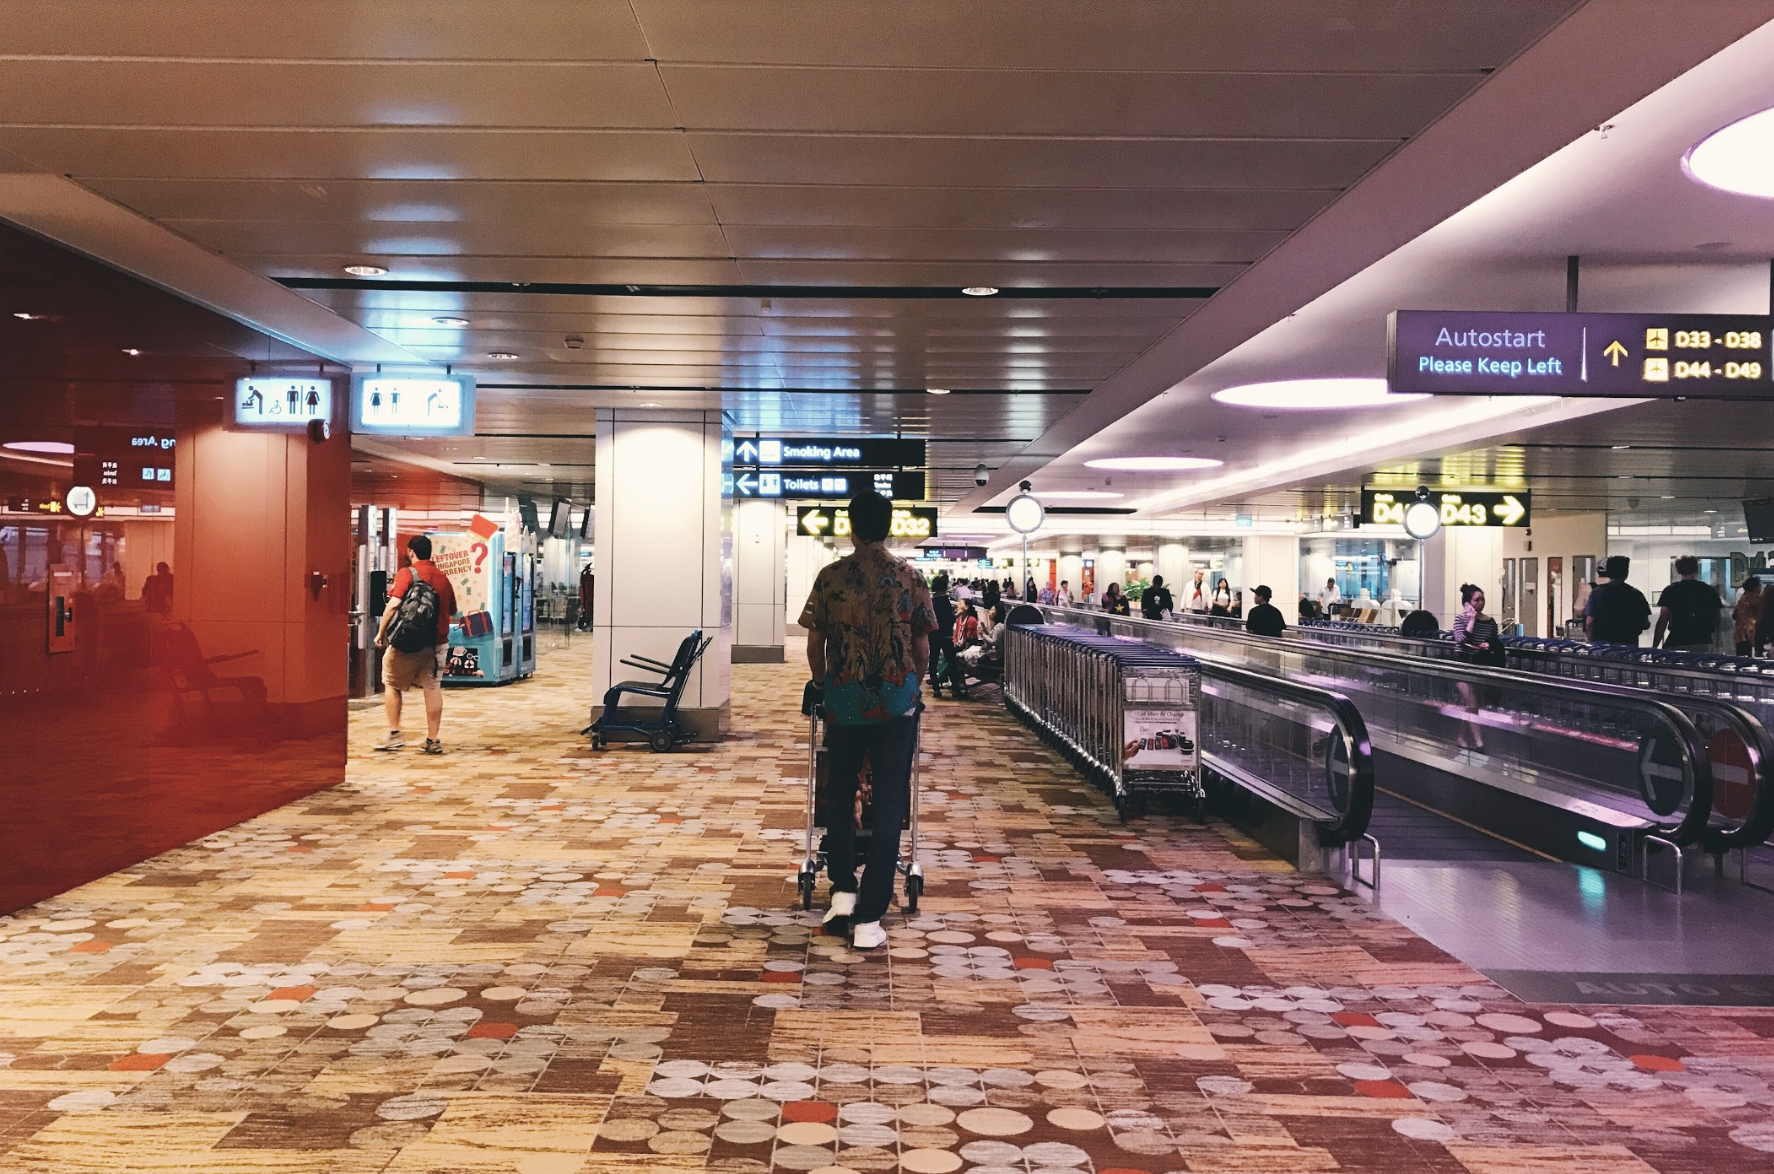 Visitor arrivals from other key source markets are also expected to fall due to lower travel confidence globally. Photo: Connected to India